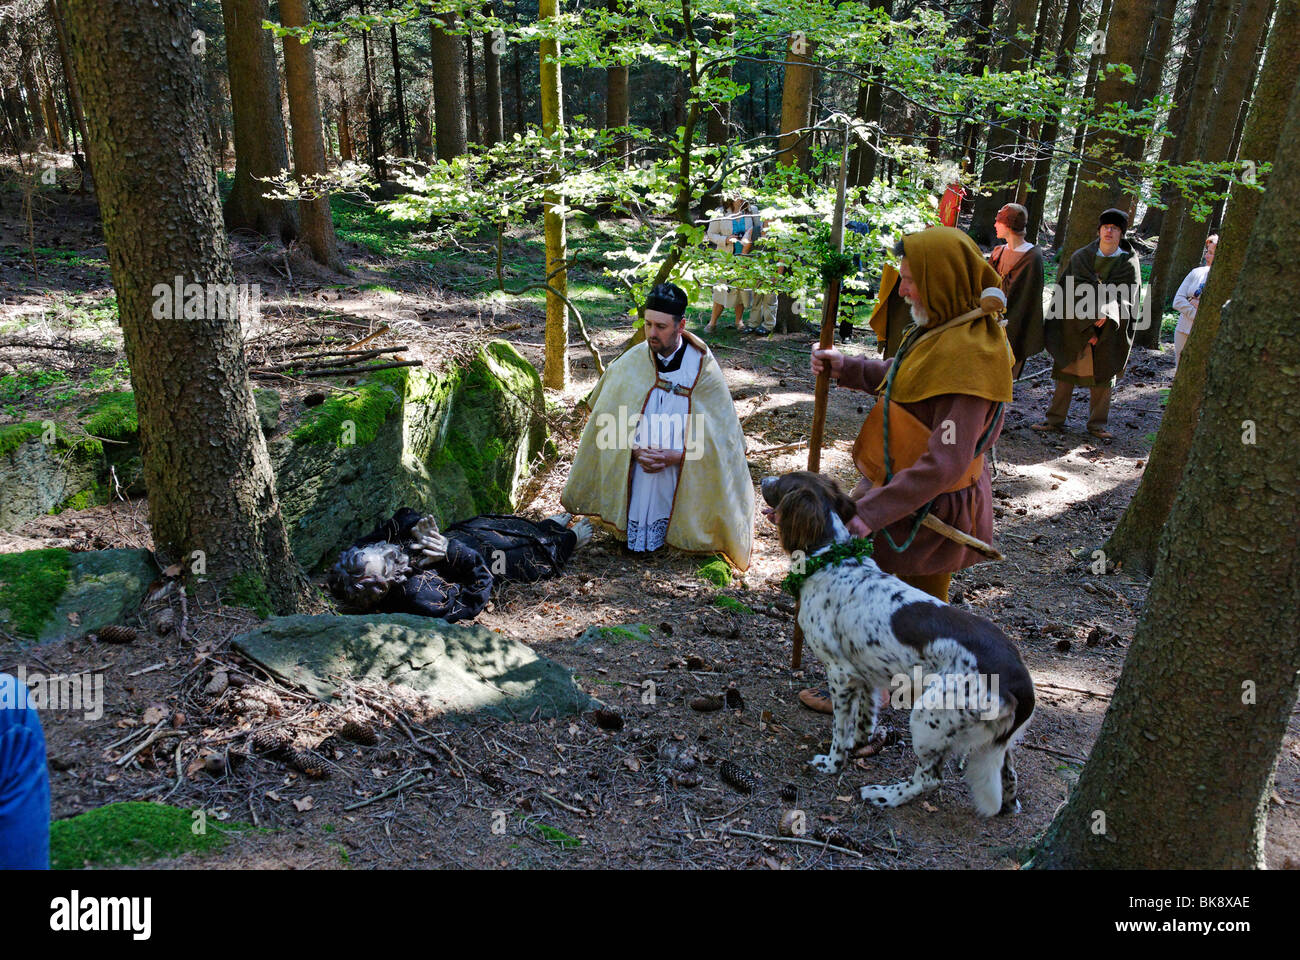 Englmar is being found, tradition of 'Englmarisuchen', 'looking for Saint Englmar', Bavarian Forest, - Stock Image